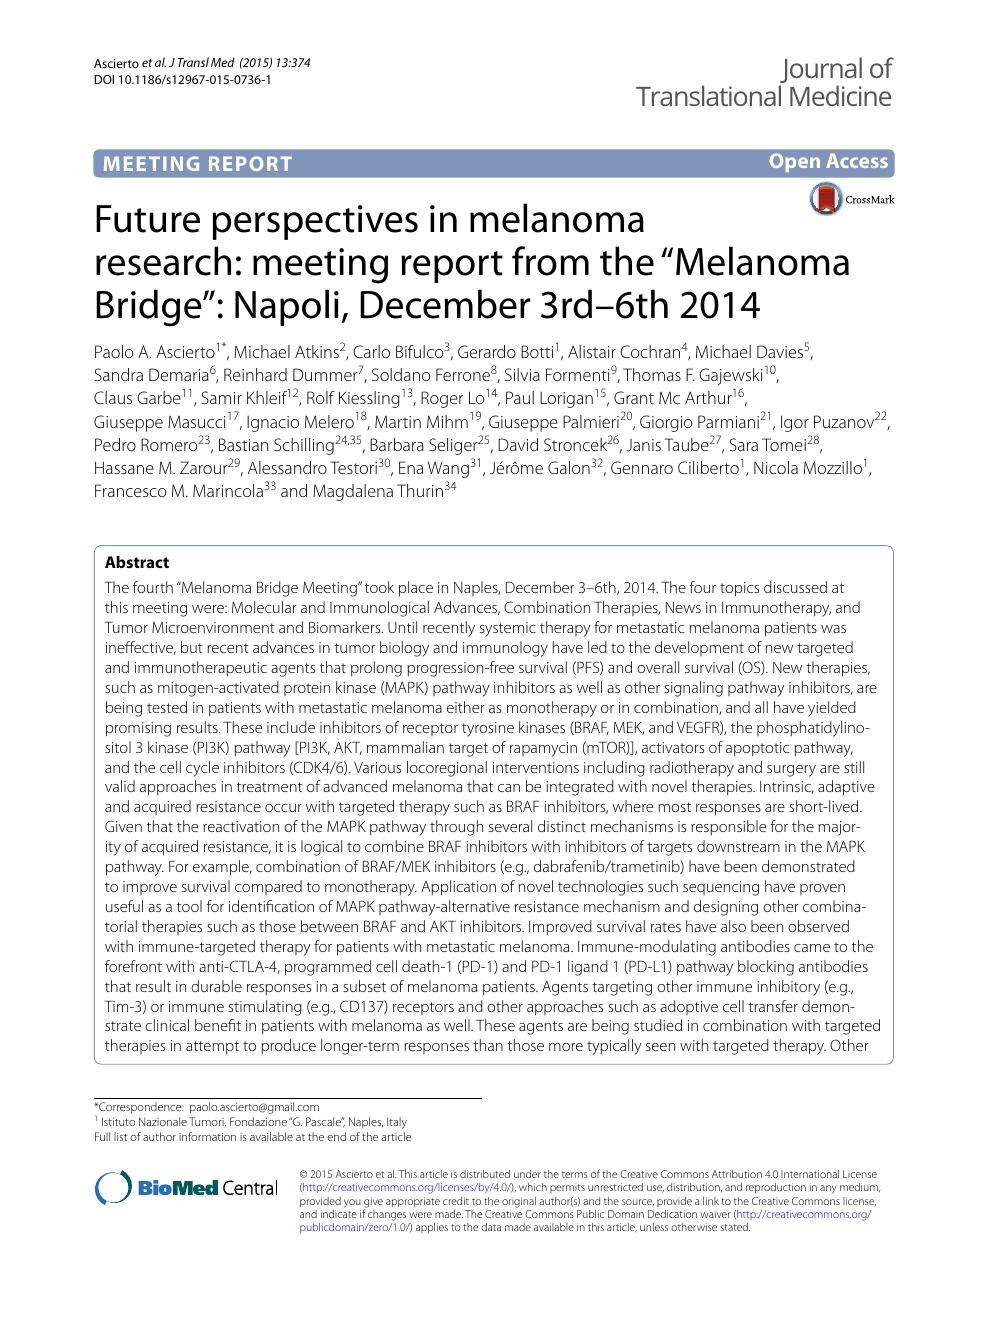 Future perspectives in melanoma research: meeting report from the